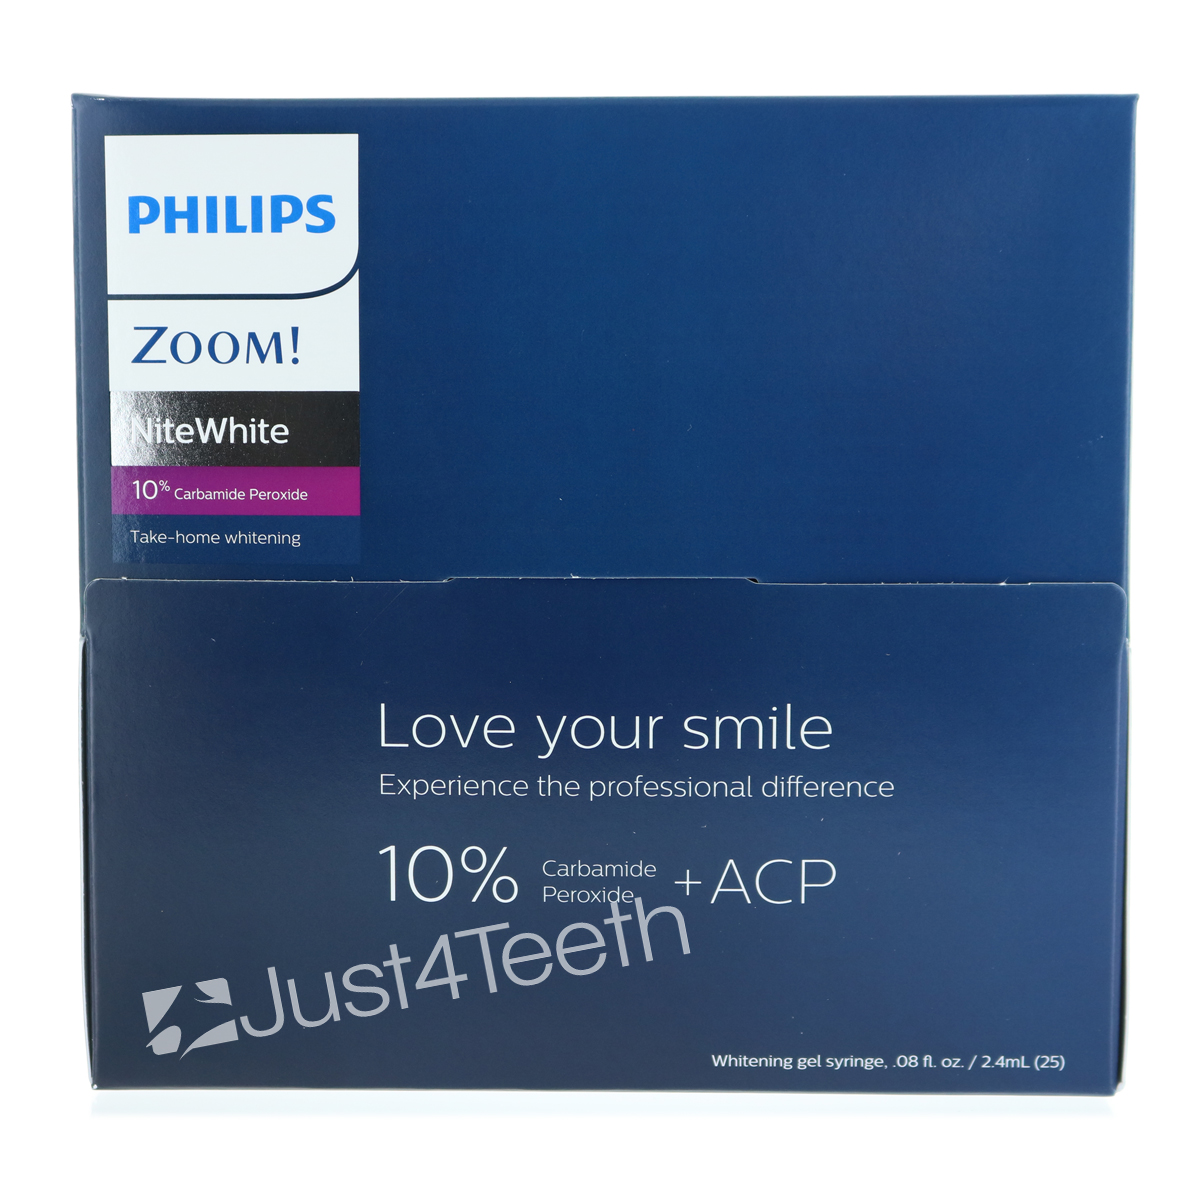 Zoom Whitening Products From Philips Just4teeth